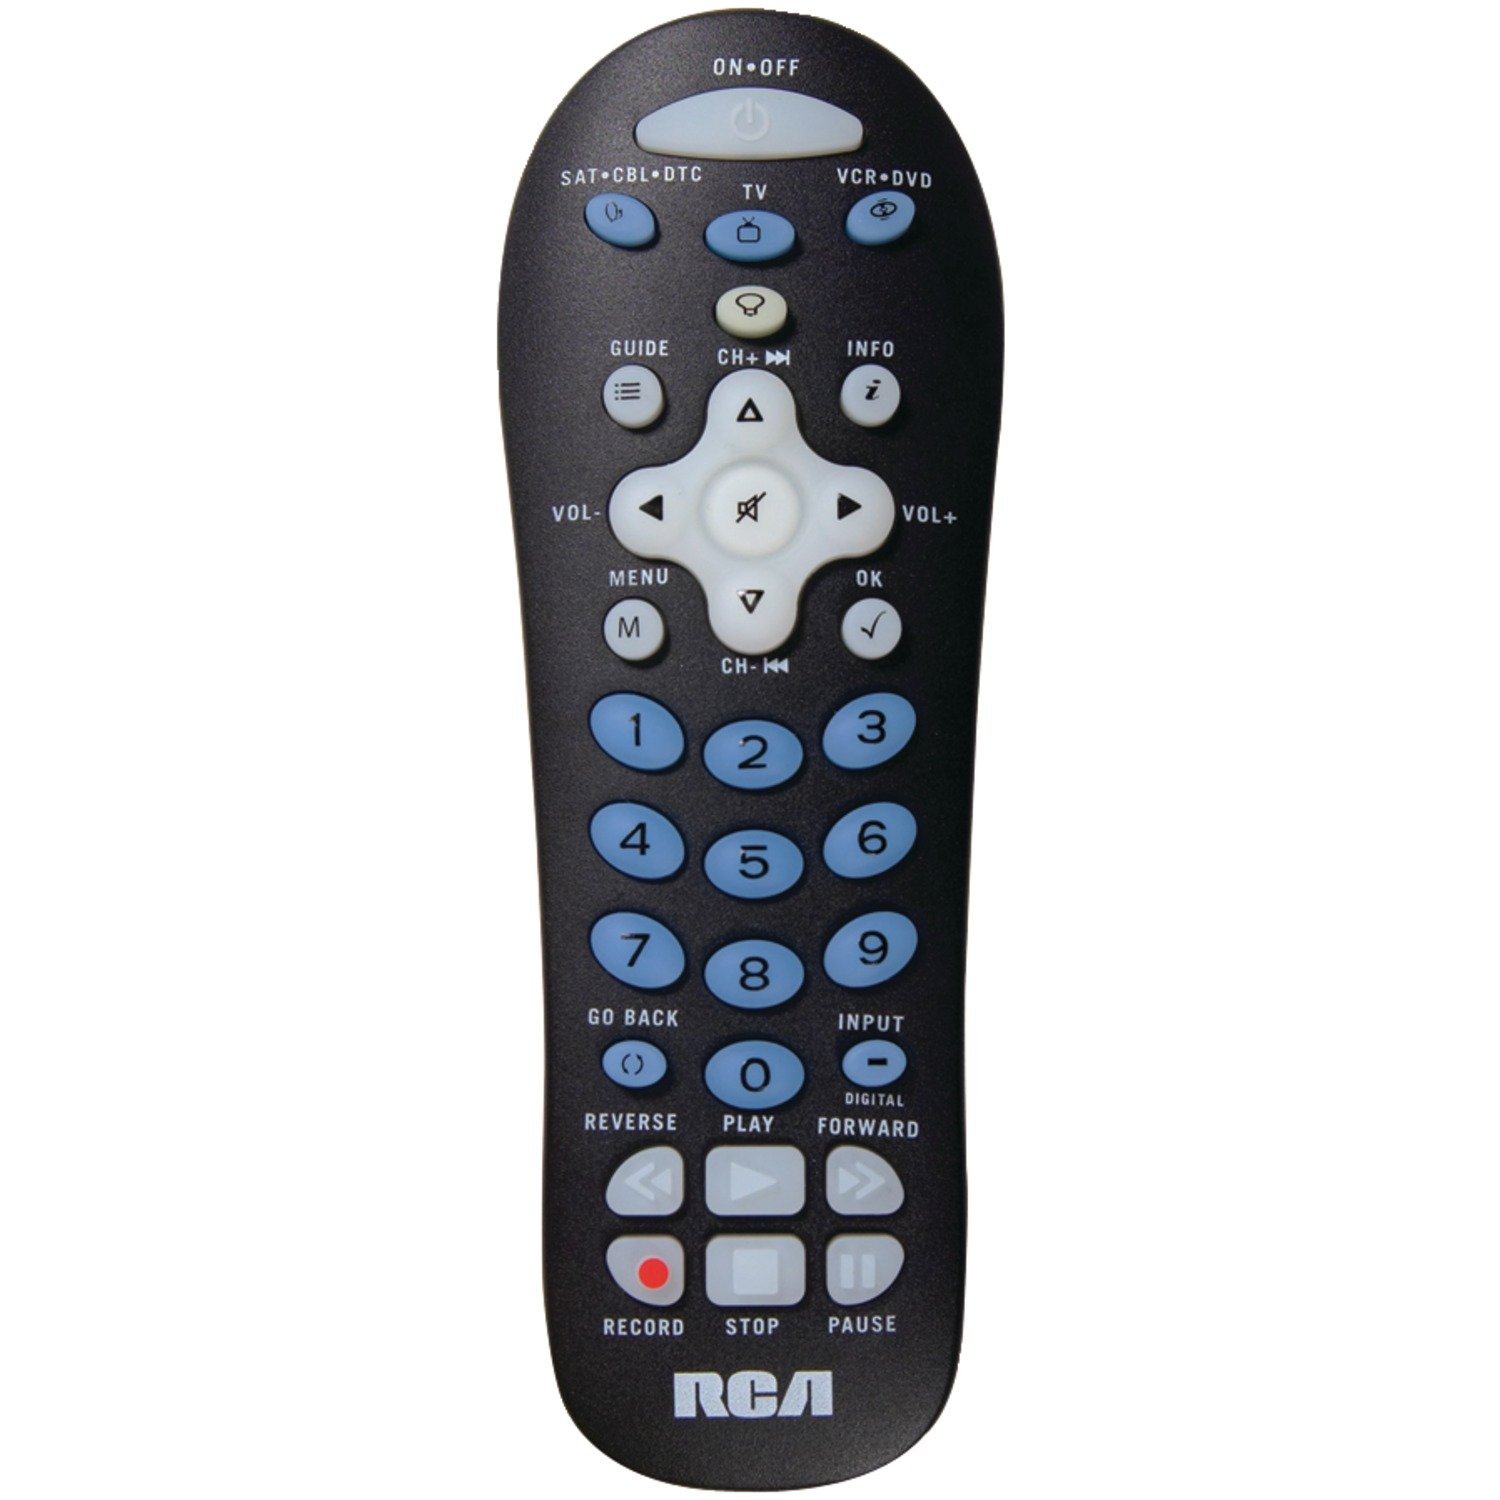 amazon com rca rcr311bir three device universal remote control rh amazon com RCA Universal Control Manual rca universal remote control instruction manual